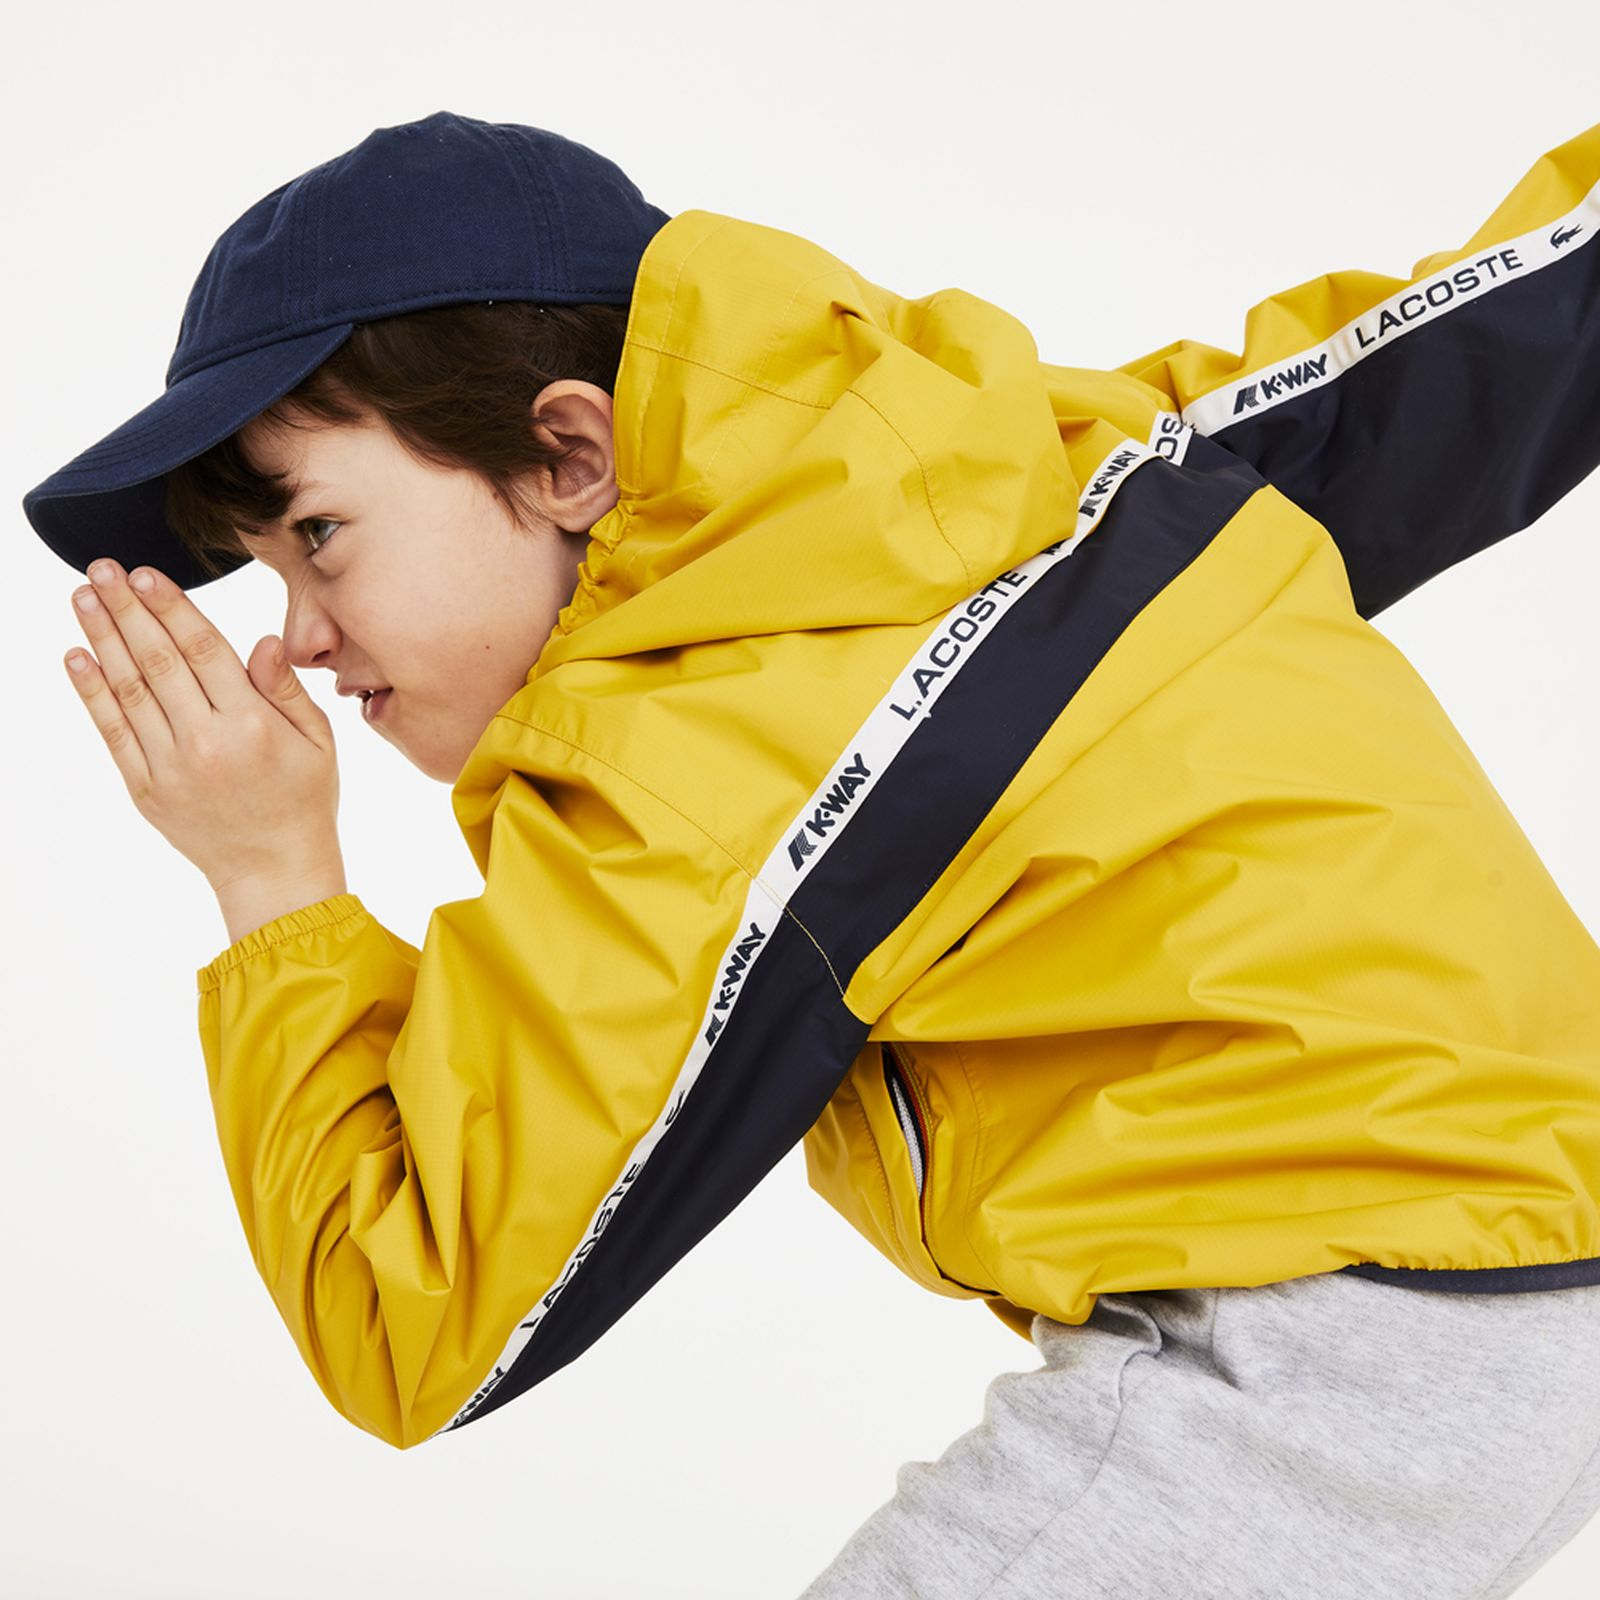 lacoste winter icons k way kids Alpha Industries gloverall k-way